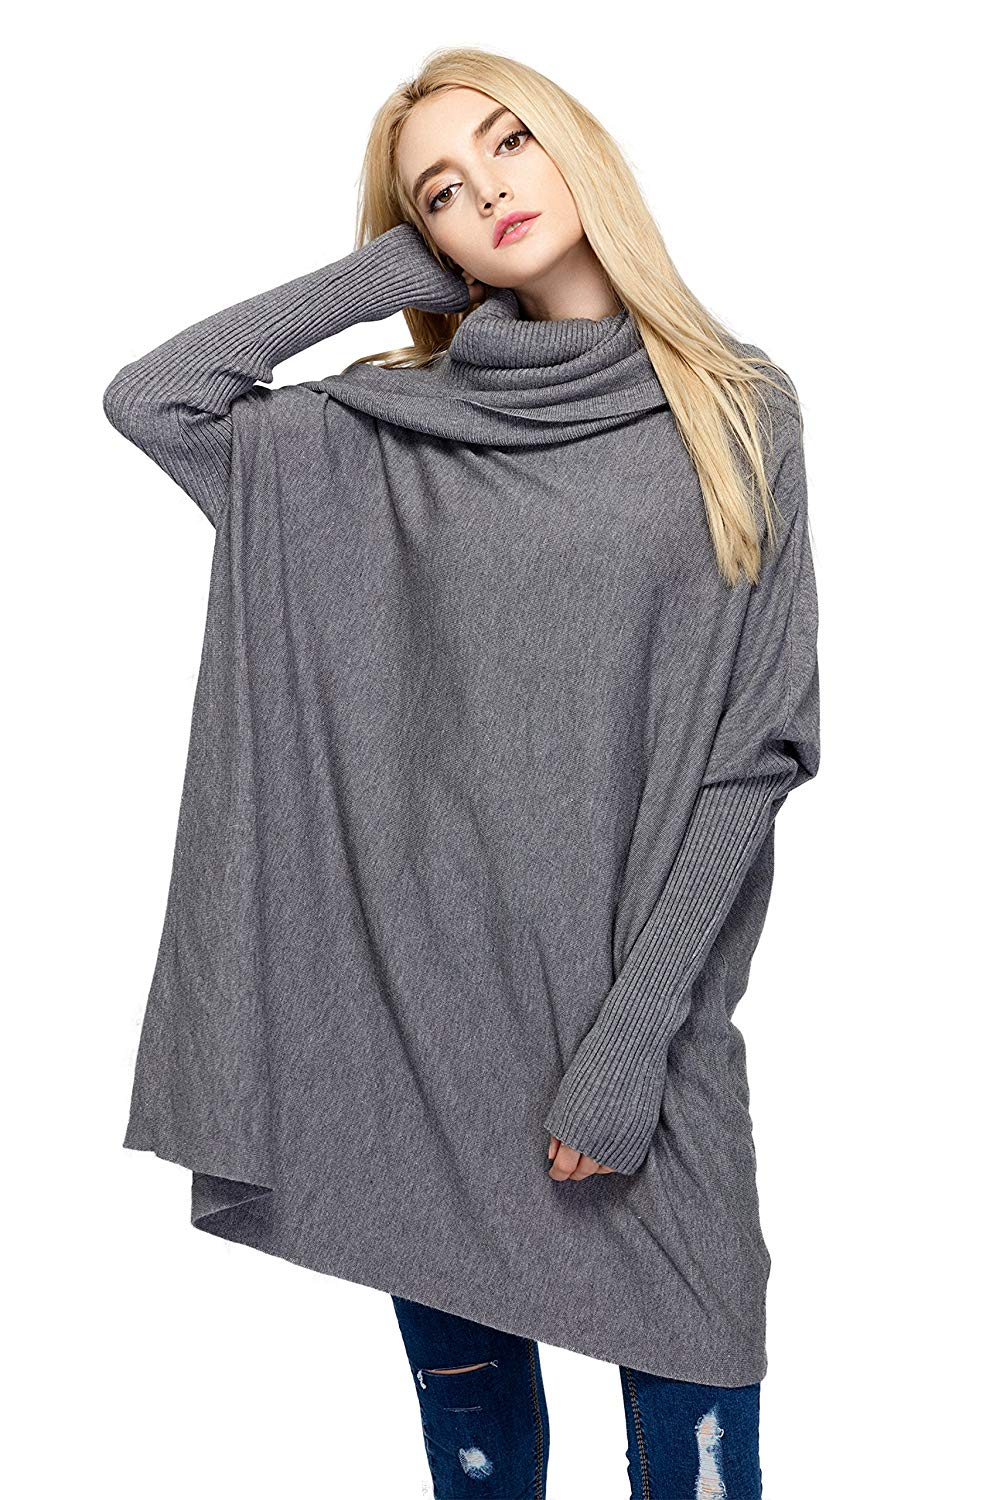 HAPEE Women's Cowl Neck Long Sleeve Loose Fit Knitted Pullover Sweaters